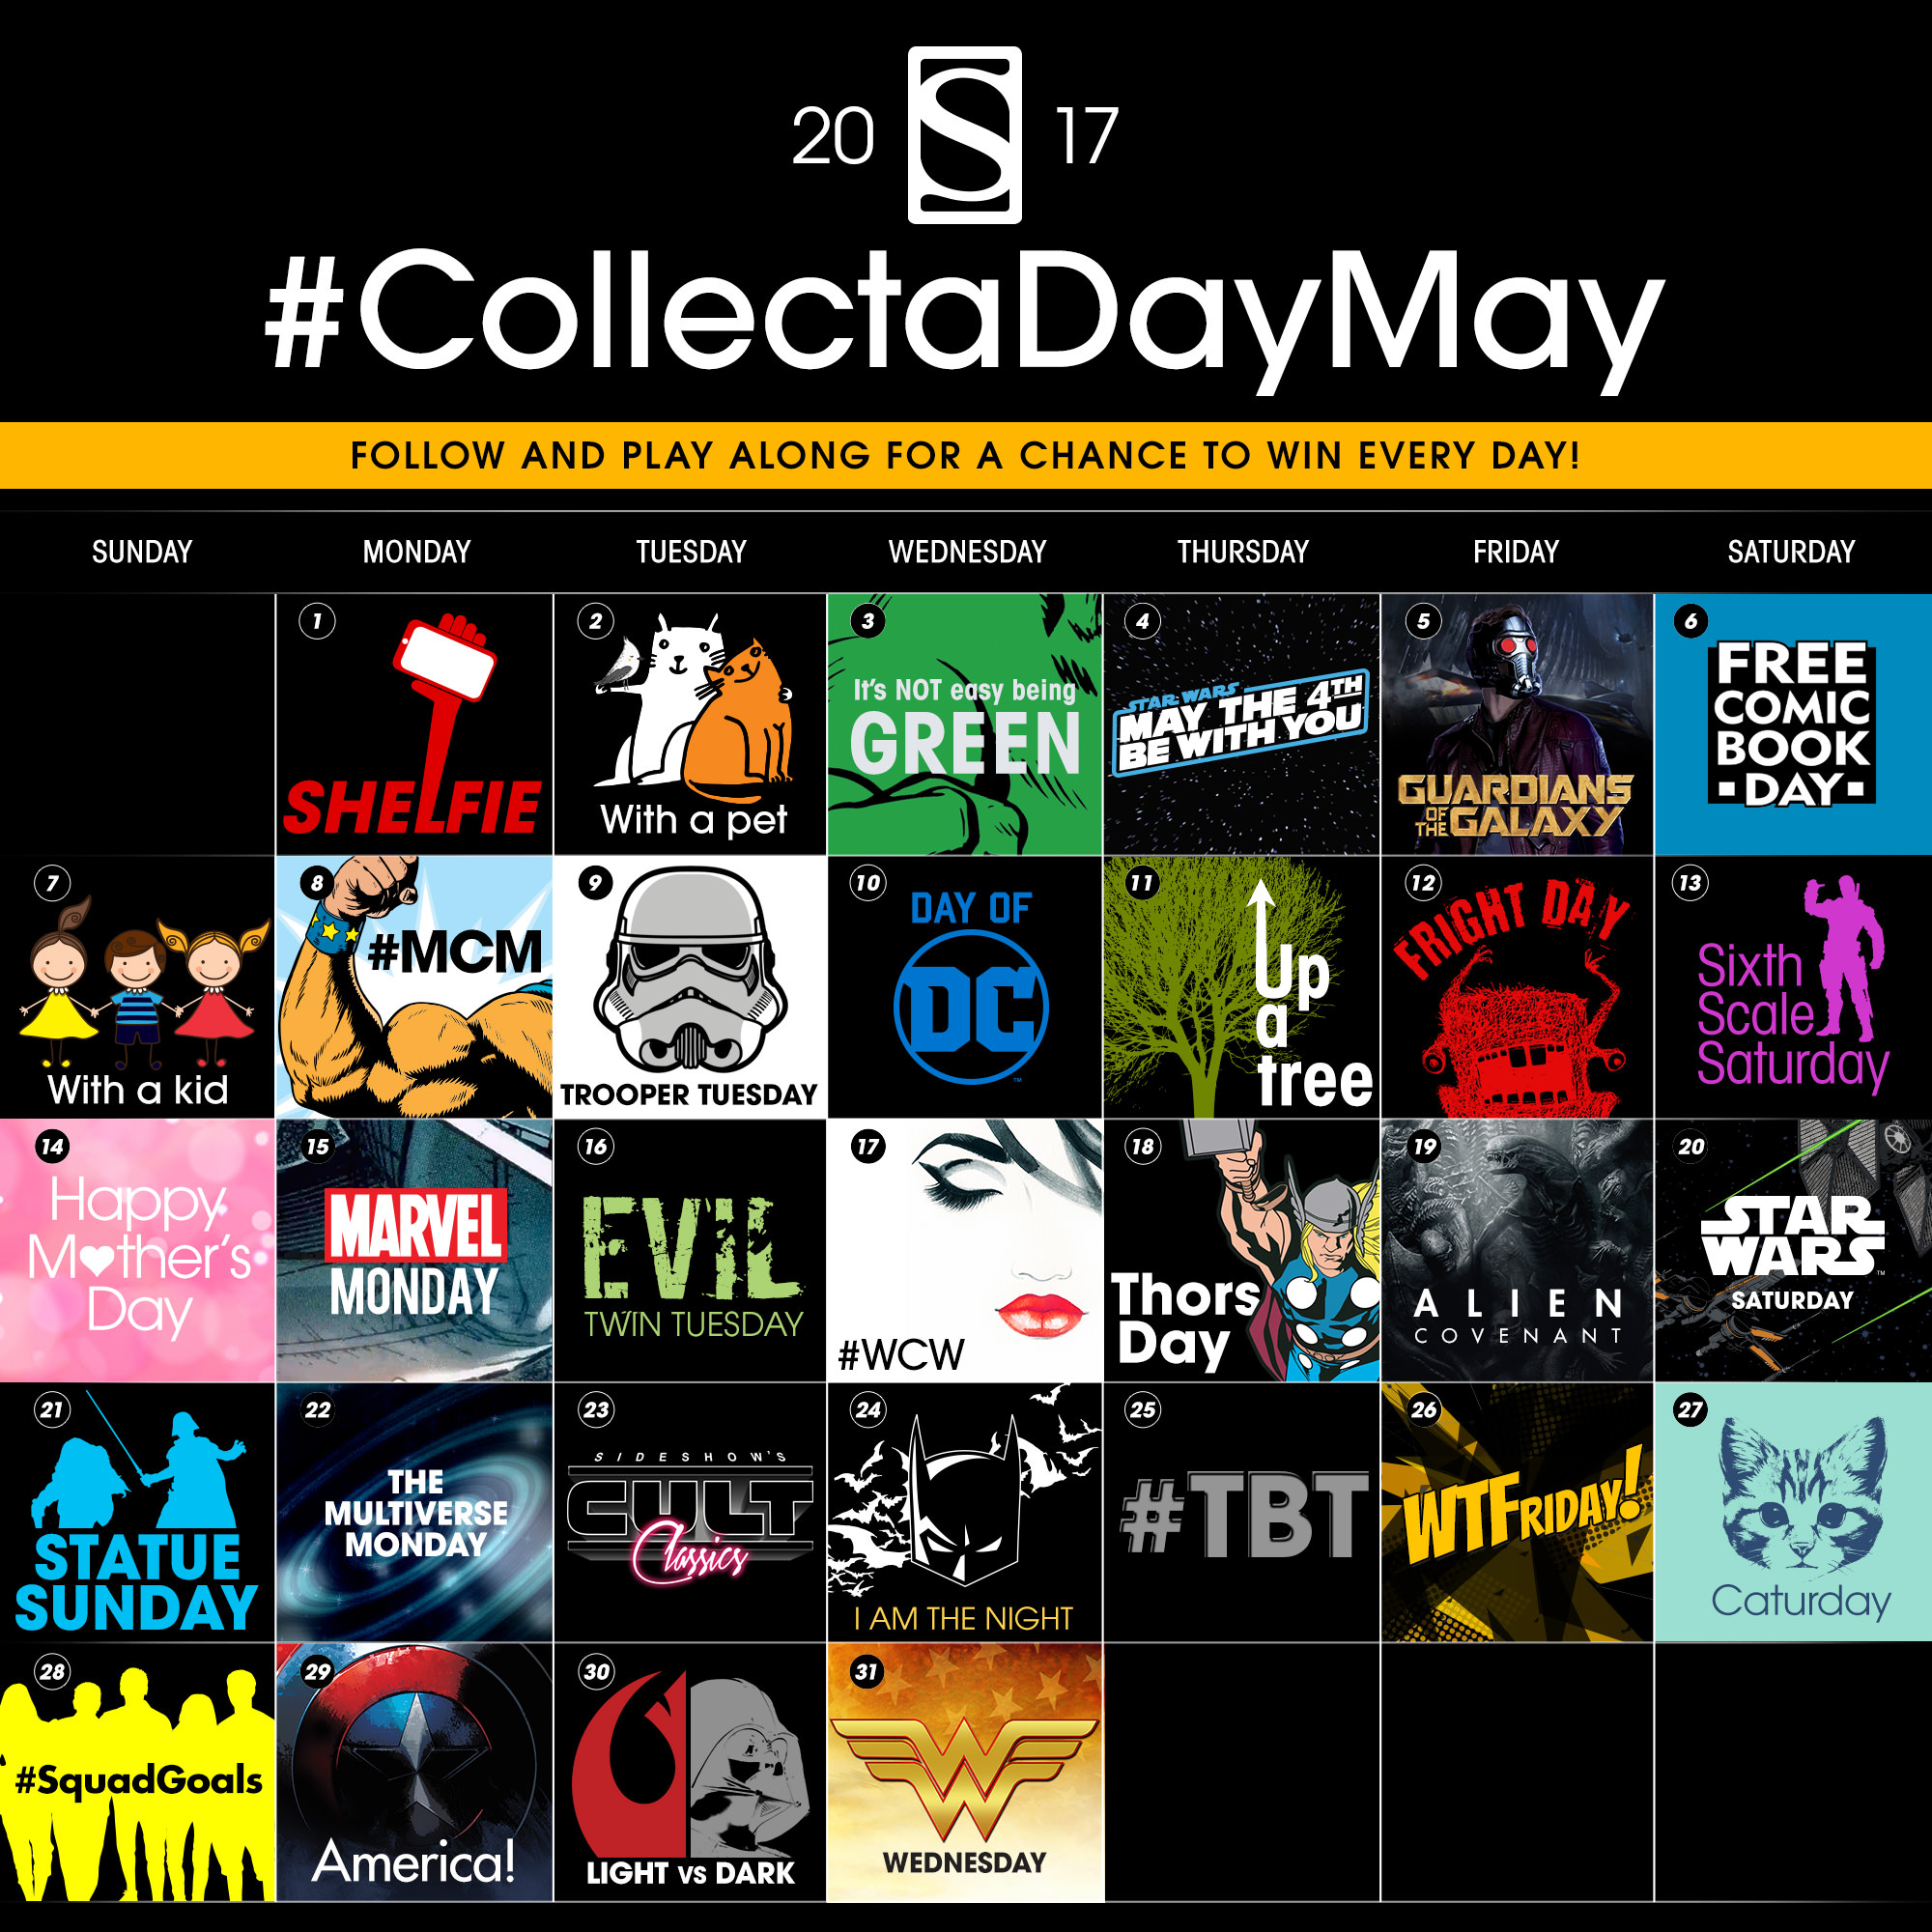 Celebrate Collect-A-Day May 2017 with Sideshow on Instagram